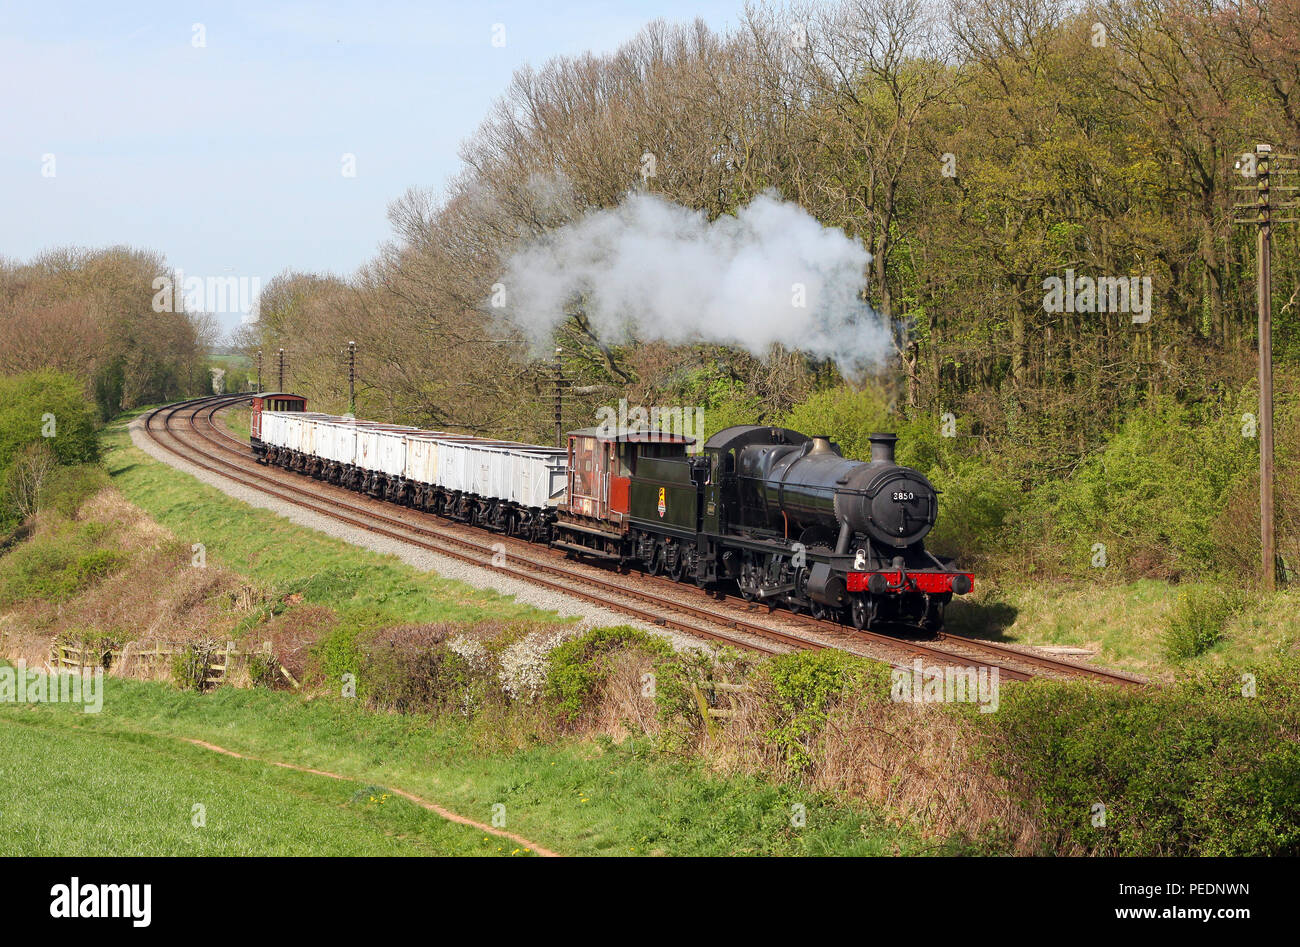 3850 Kinchley lane on the Great Central Railway 10.4.11 - Stock Image